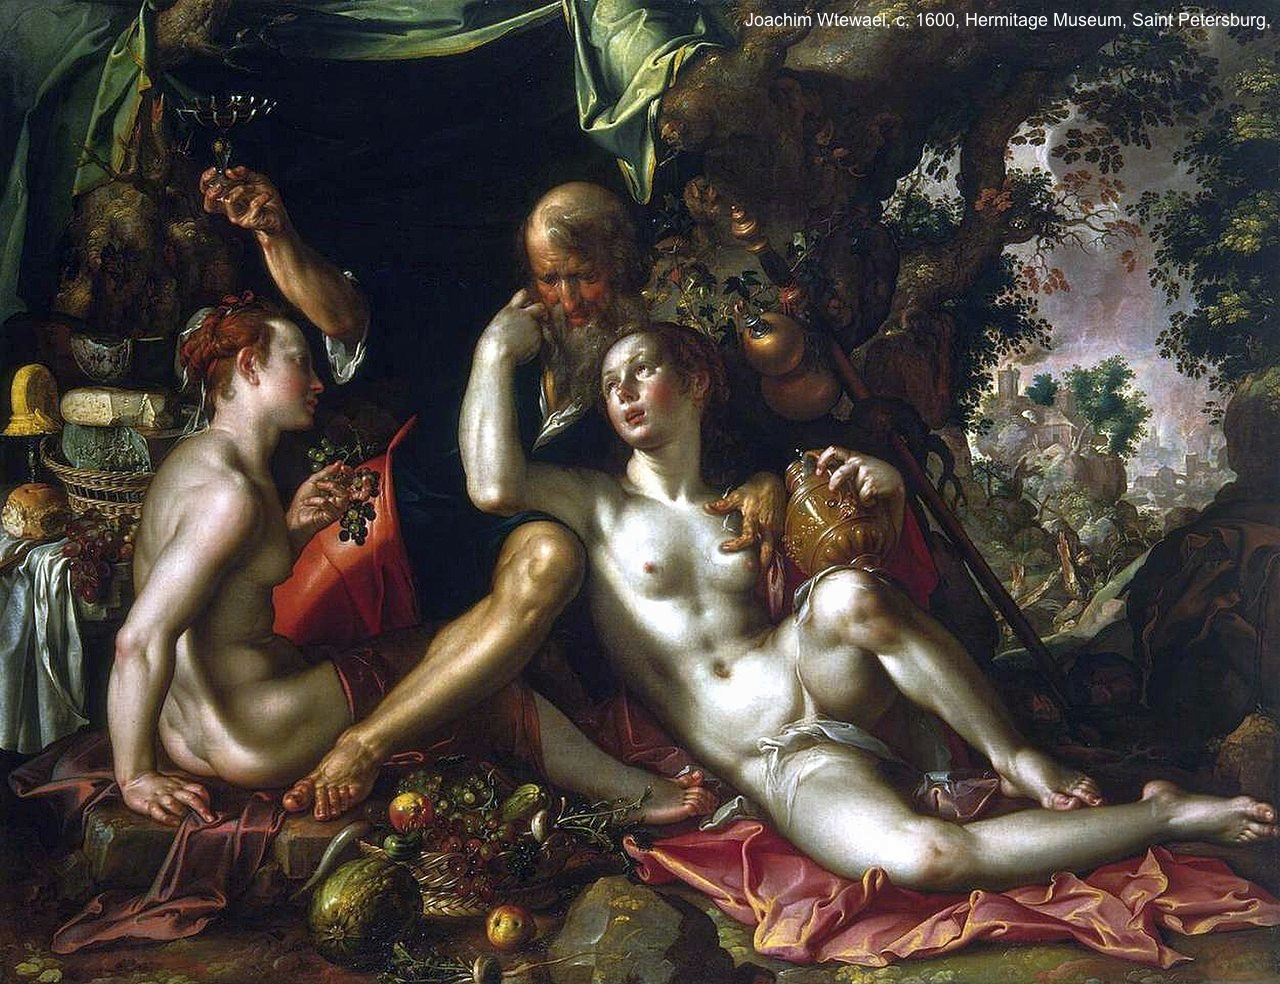 1280px-Joachim_Wtewael_-_Lot_and_his_Daughters_-_WGA25909